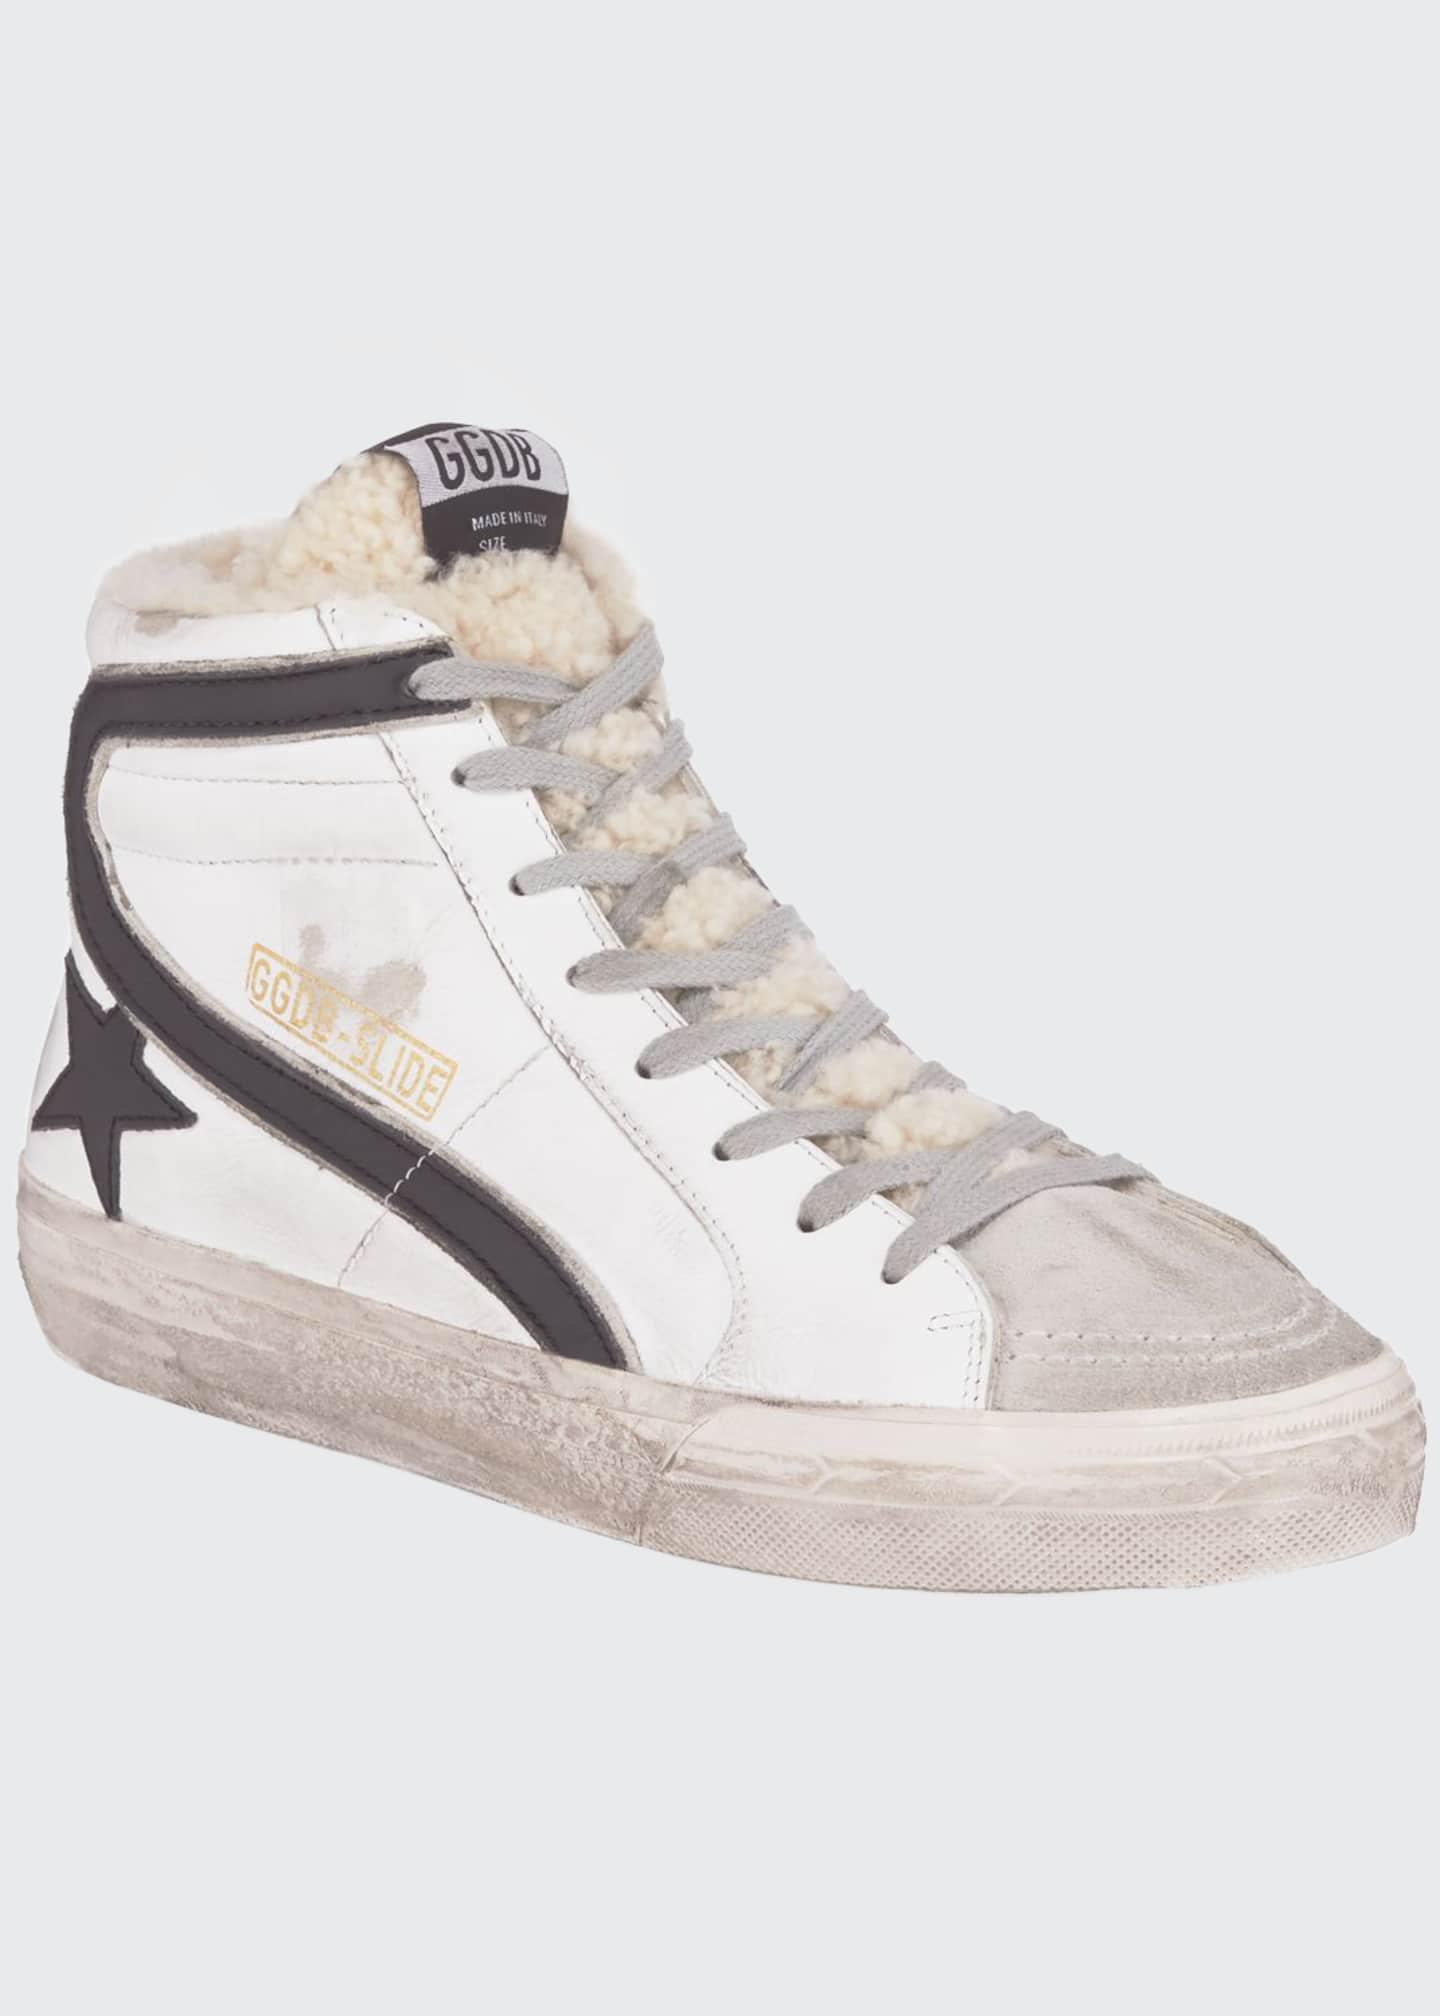 Slide Shearling Lined High Top Sneakers